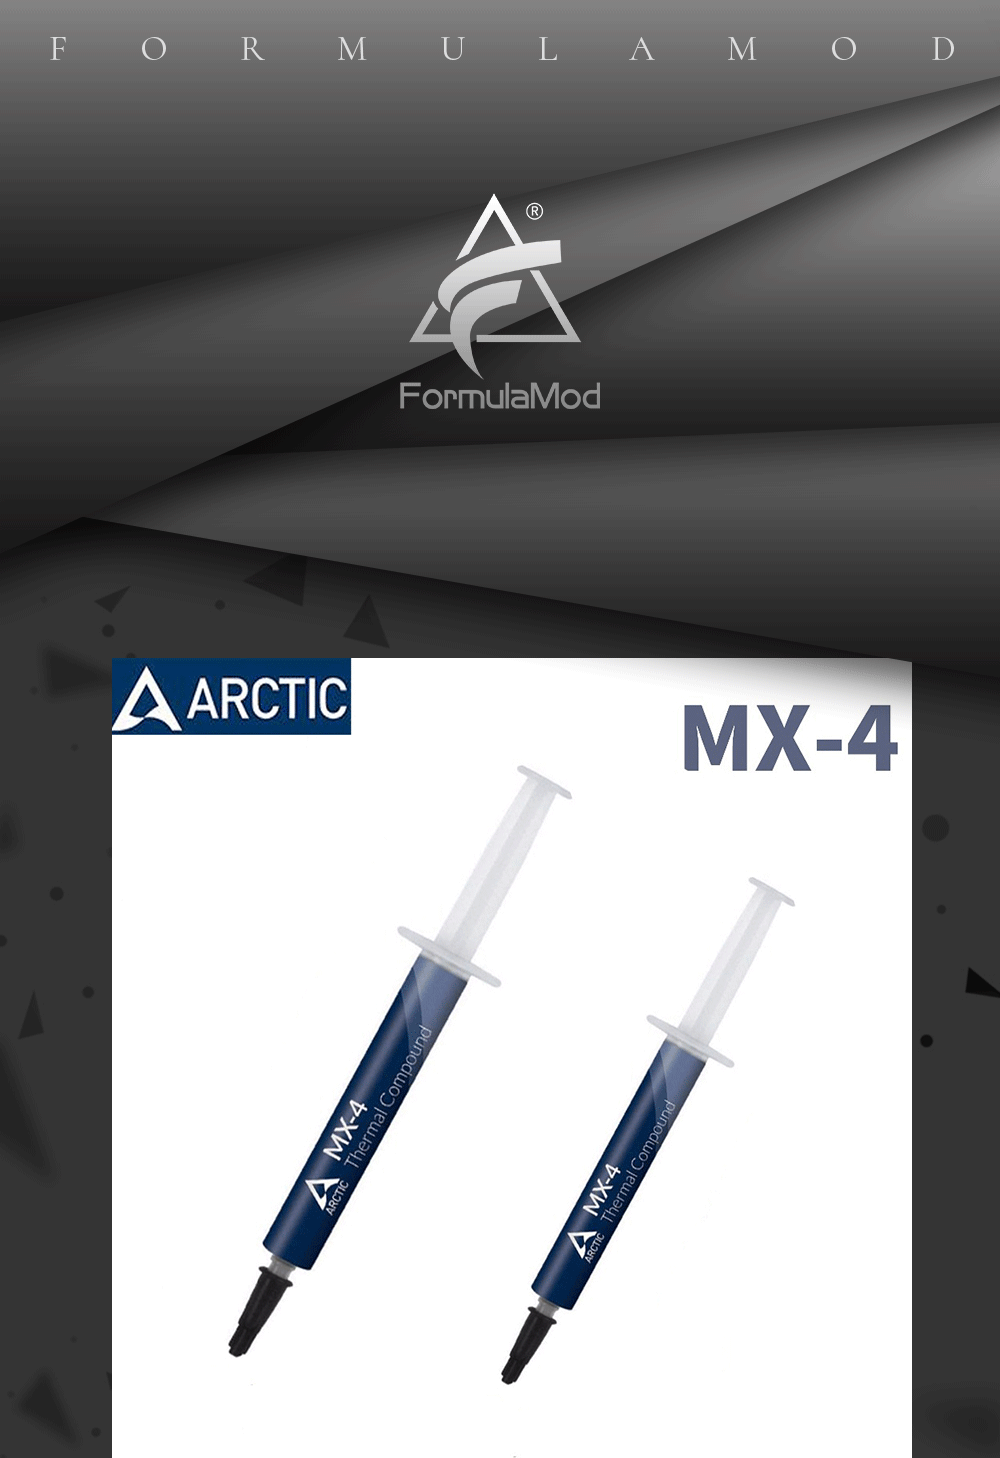 ARCTIC MX-4 8.5 W/mK Thermal Grease Thermal Compound For Graphics Card Cpu GPU Grease 4g/8g